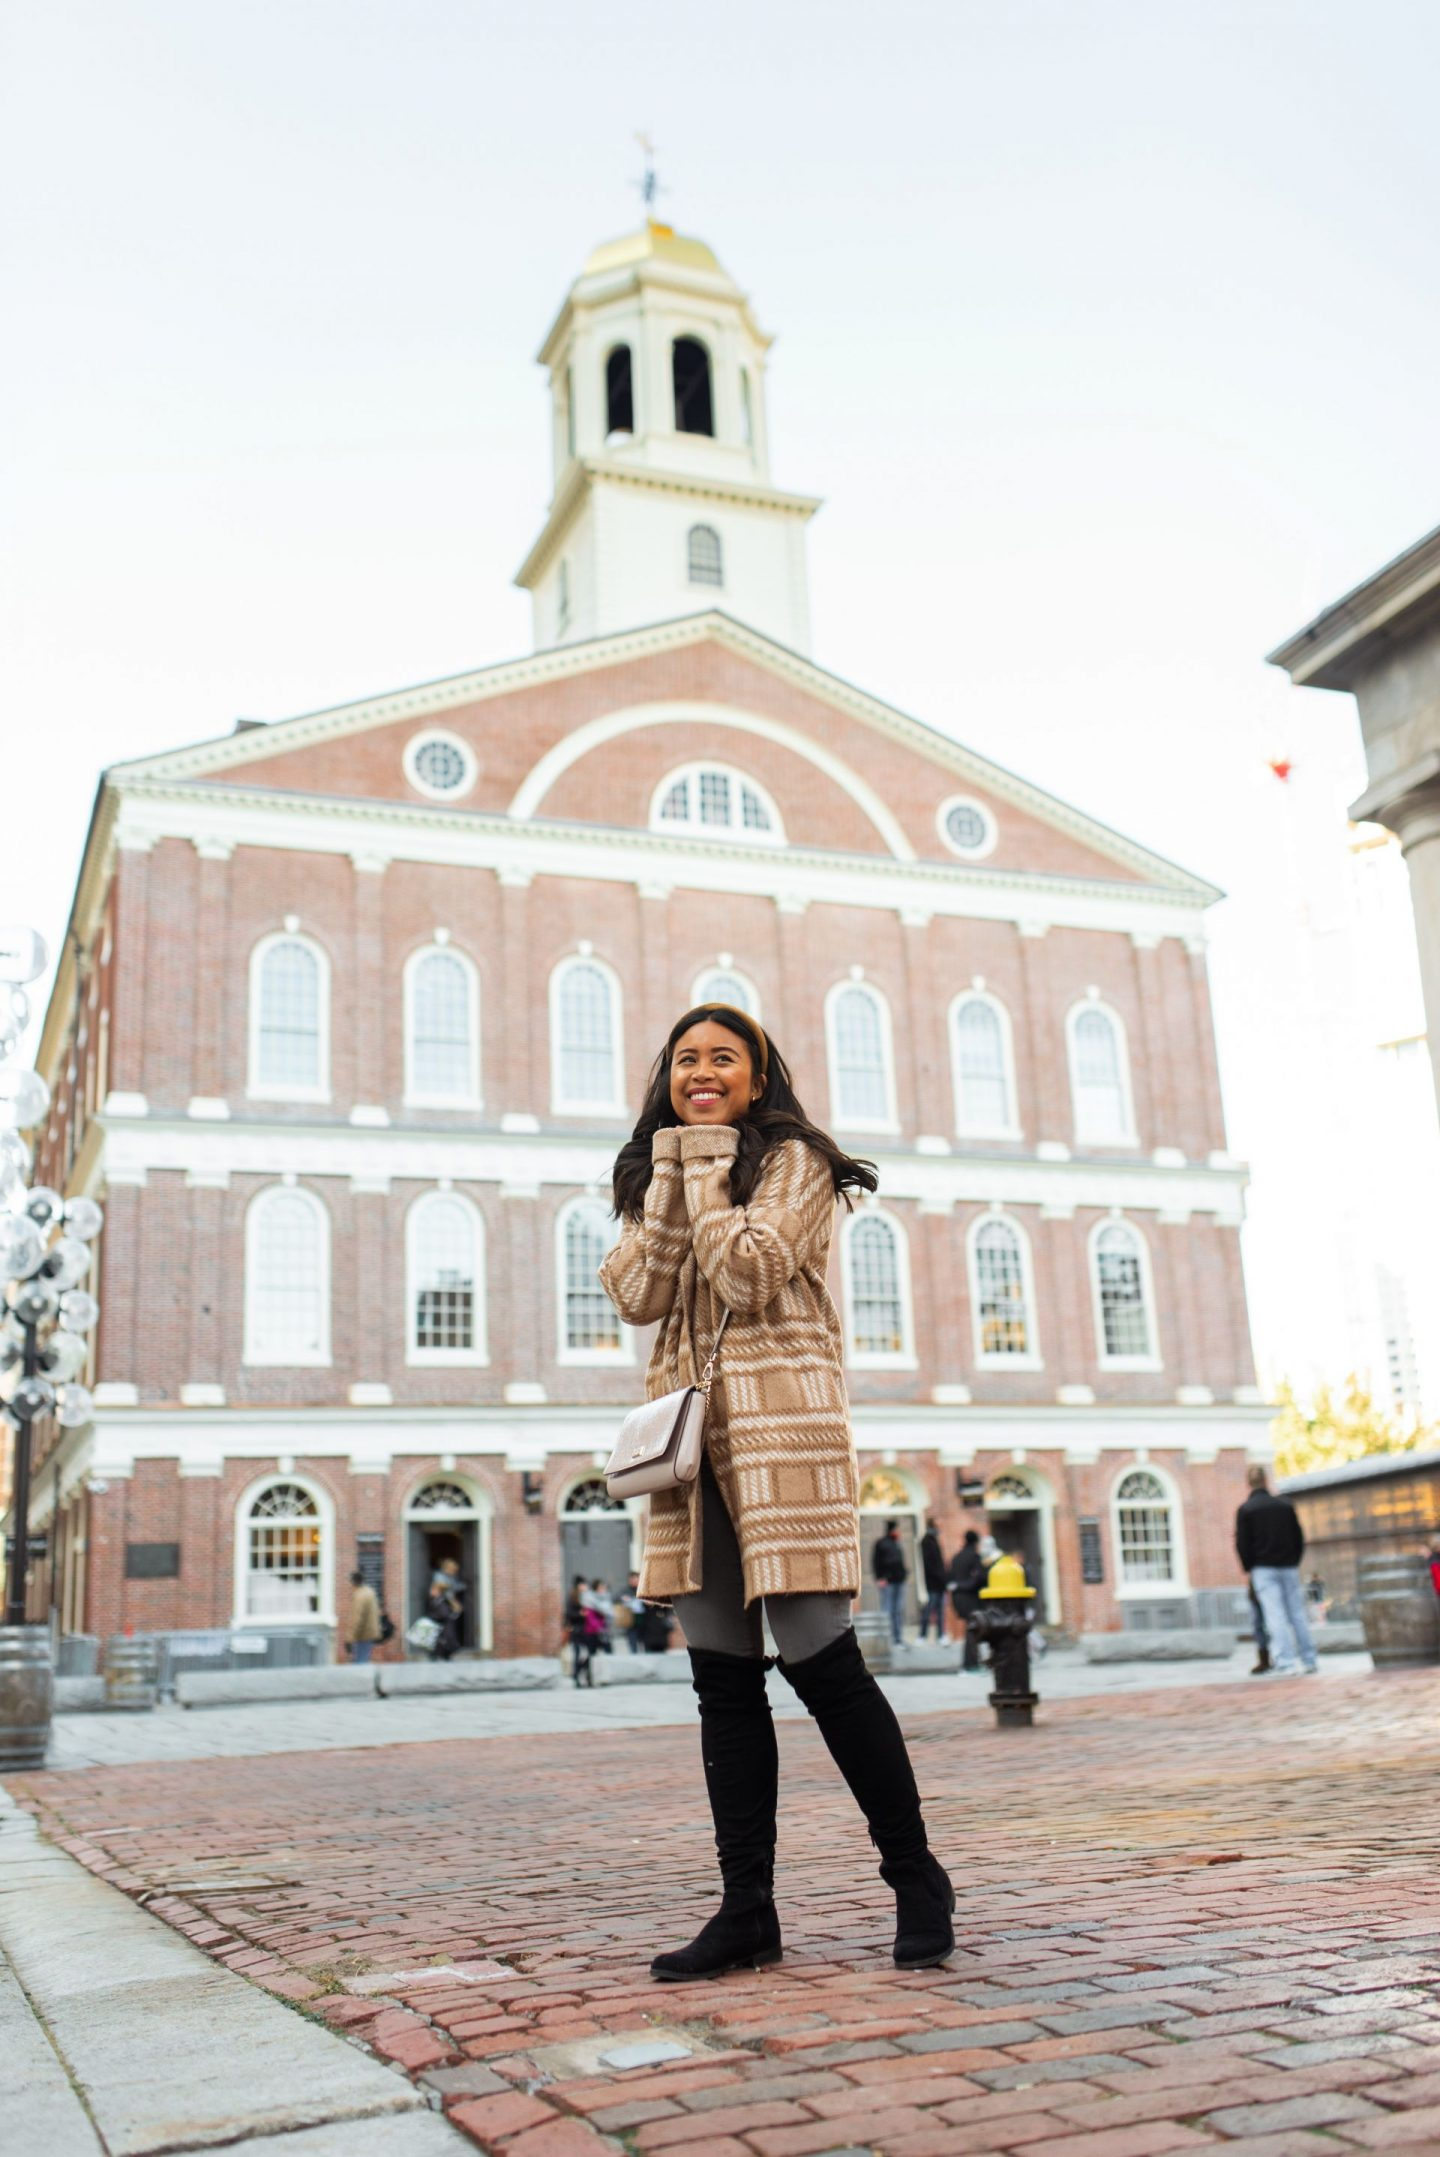 Faneuil Hall - Quincy Market